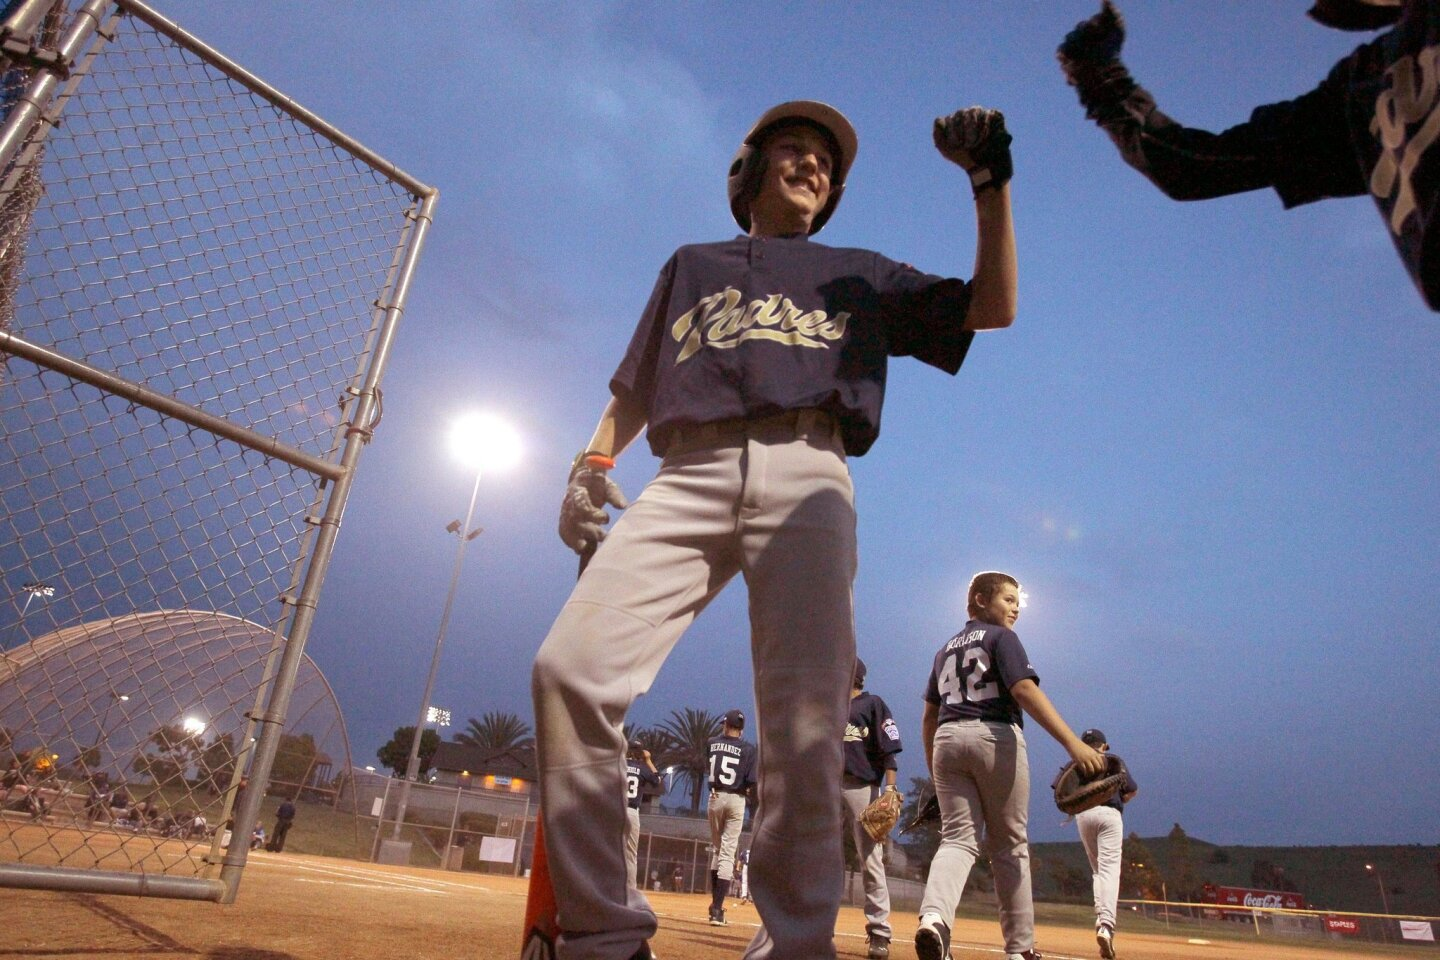 Lighting bills impact Oceanside Little League